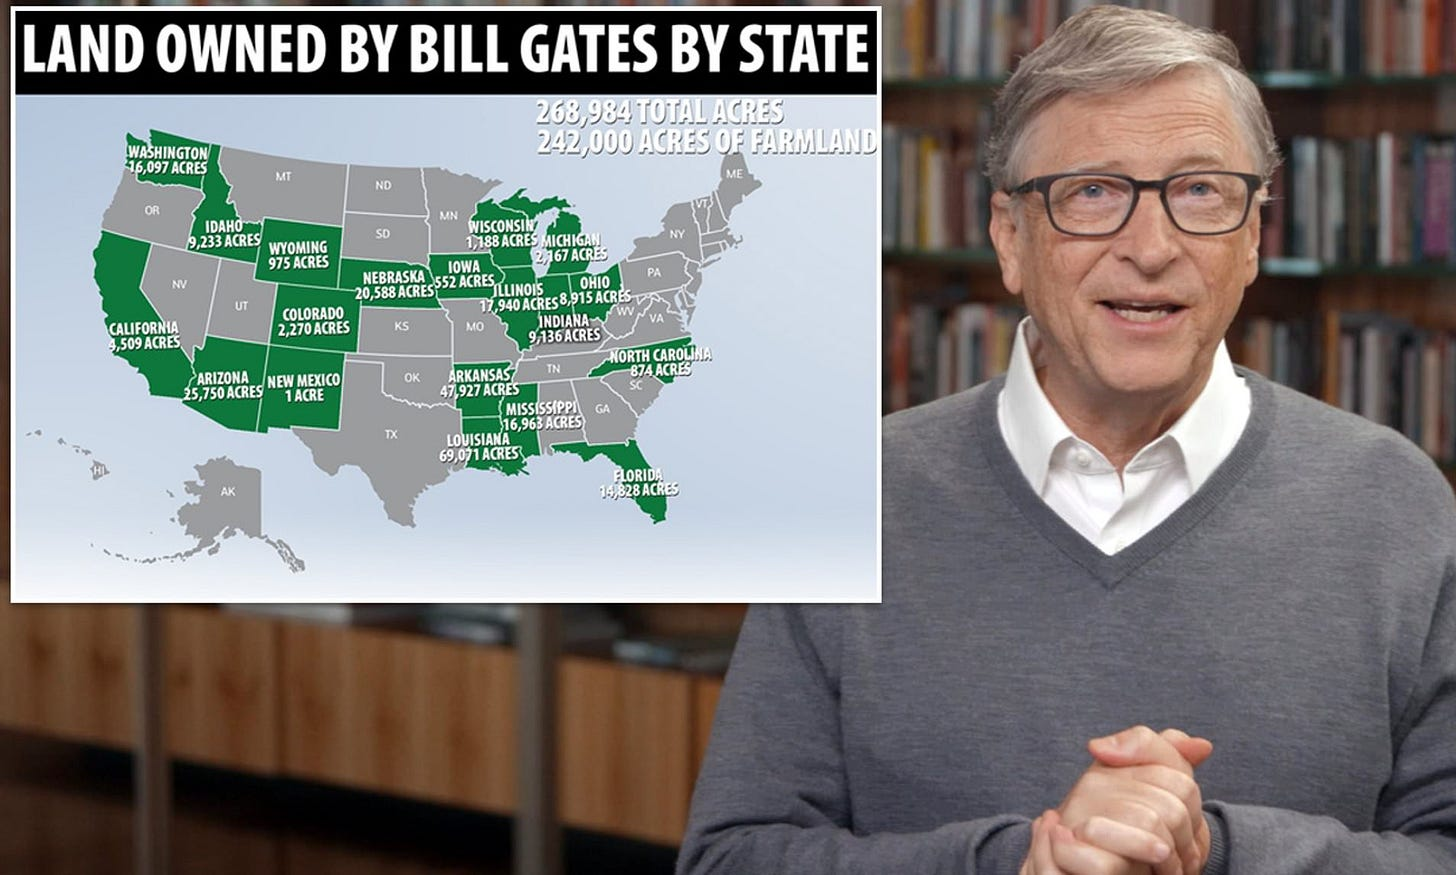 Bill Gates is now the biggest owner of FARMLAND in the US after buying up  242,000 acres | Daily Mail Online